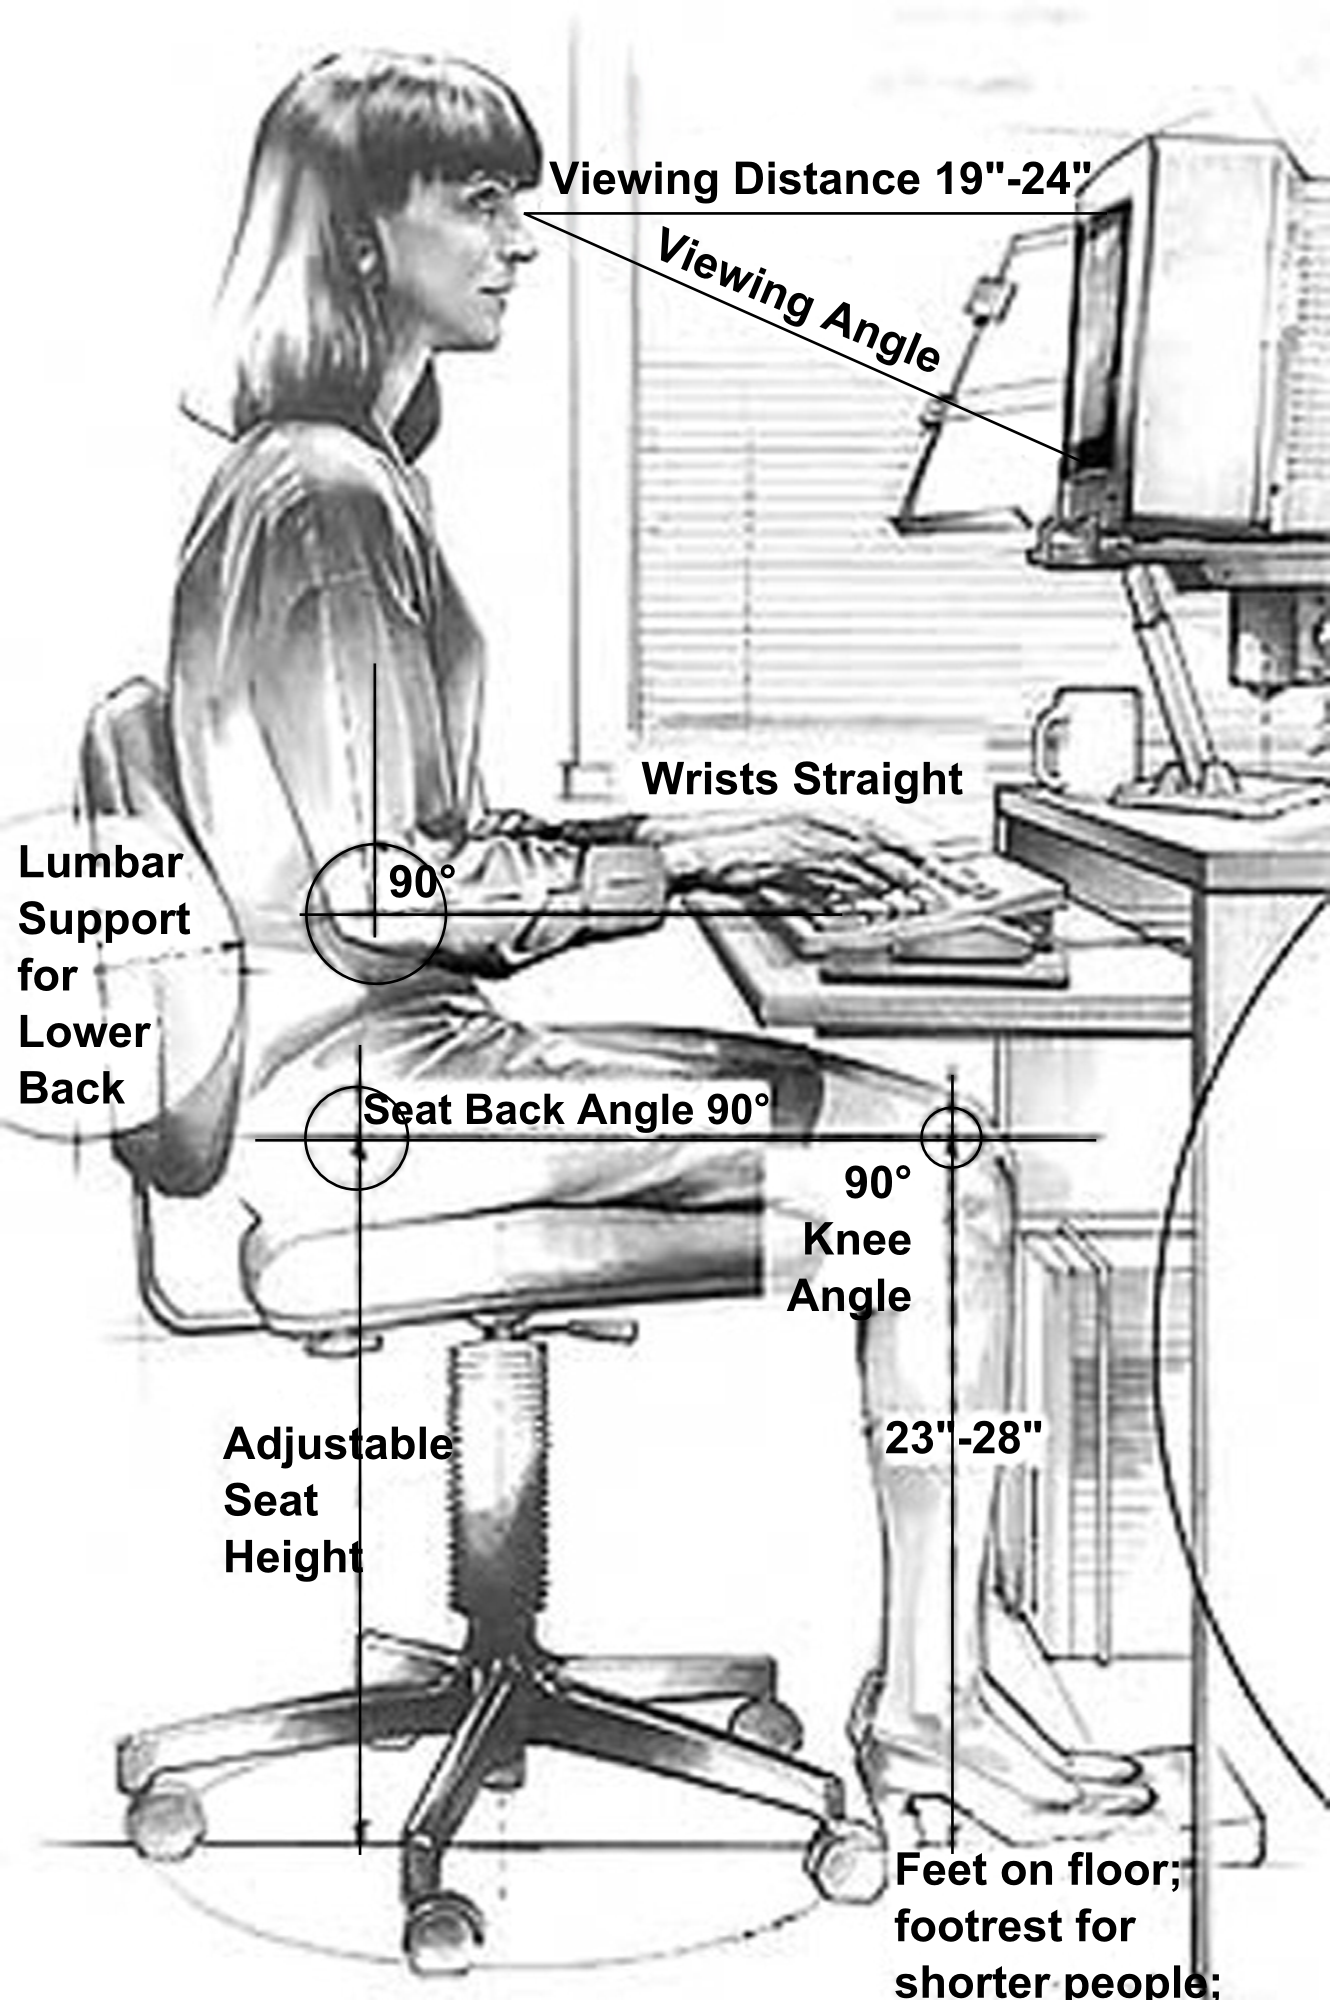 Ergonomics in workplace